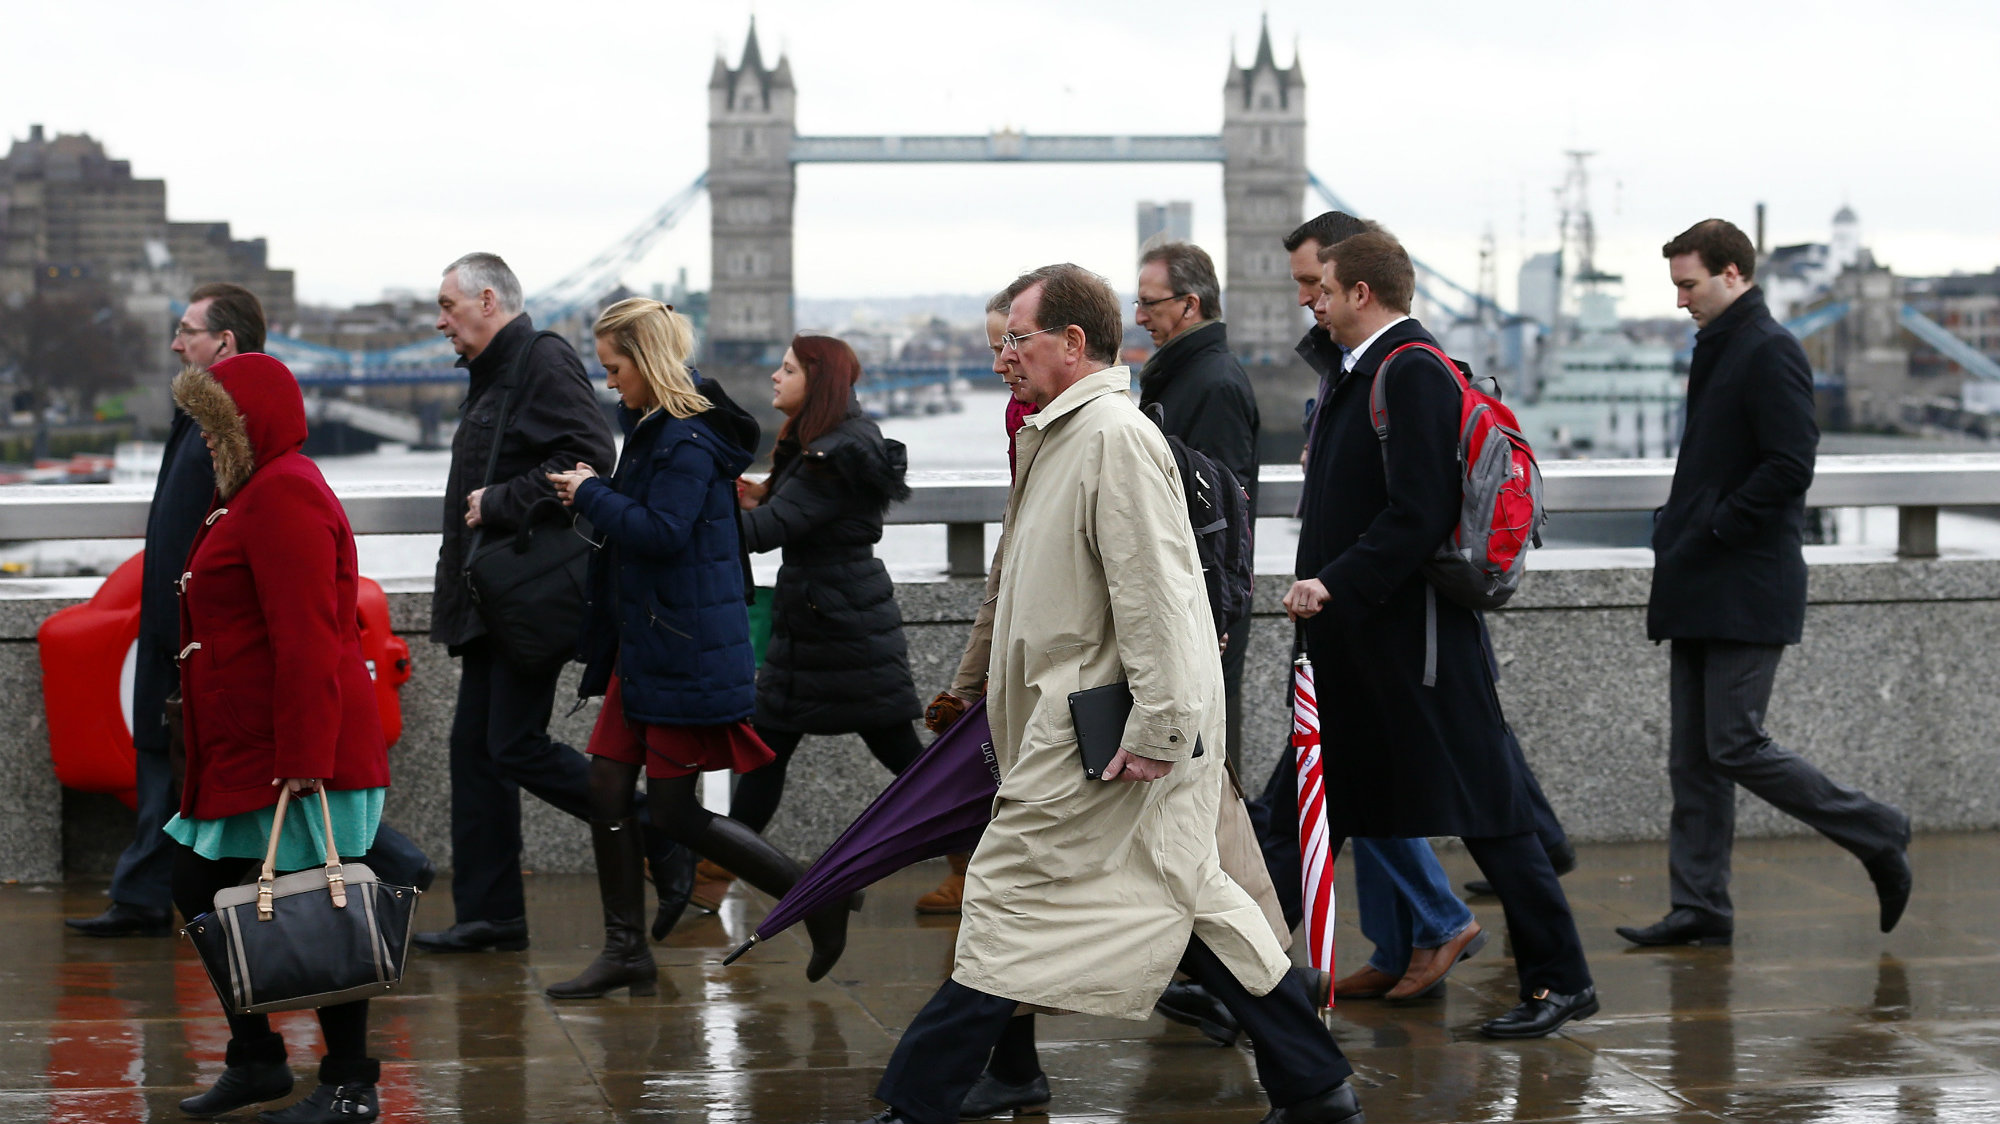 Tower Bridge is seen as workers cross London Bridge in London February 28, 2014.